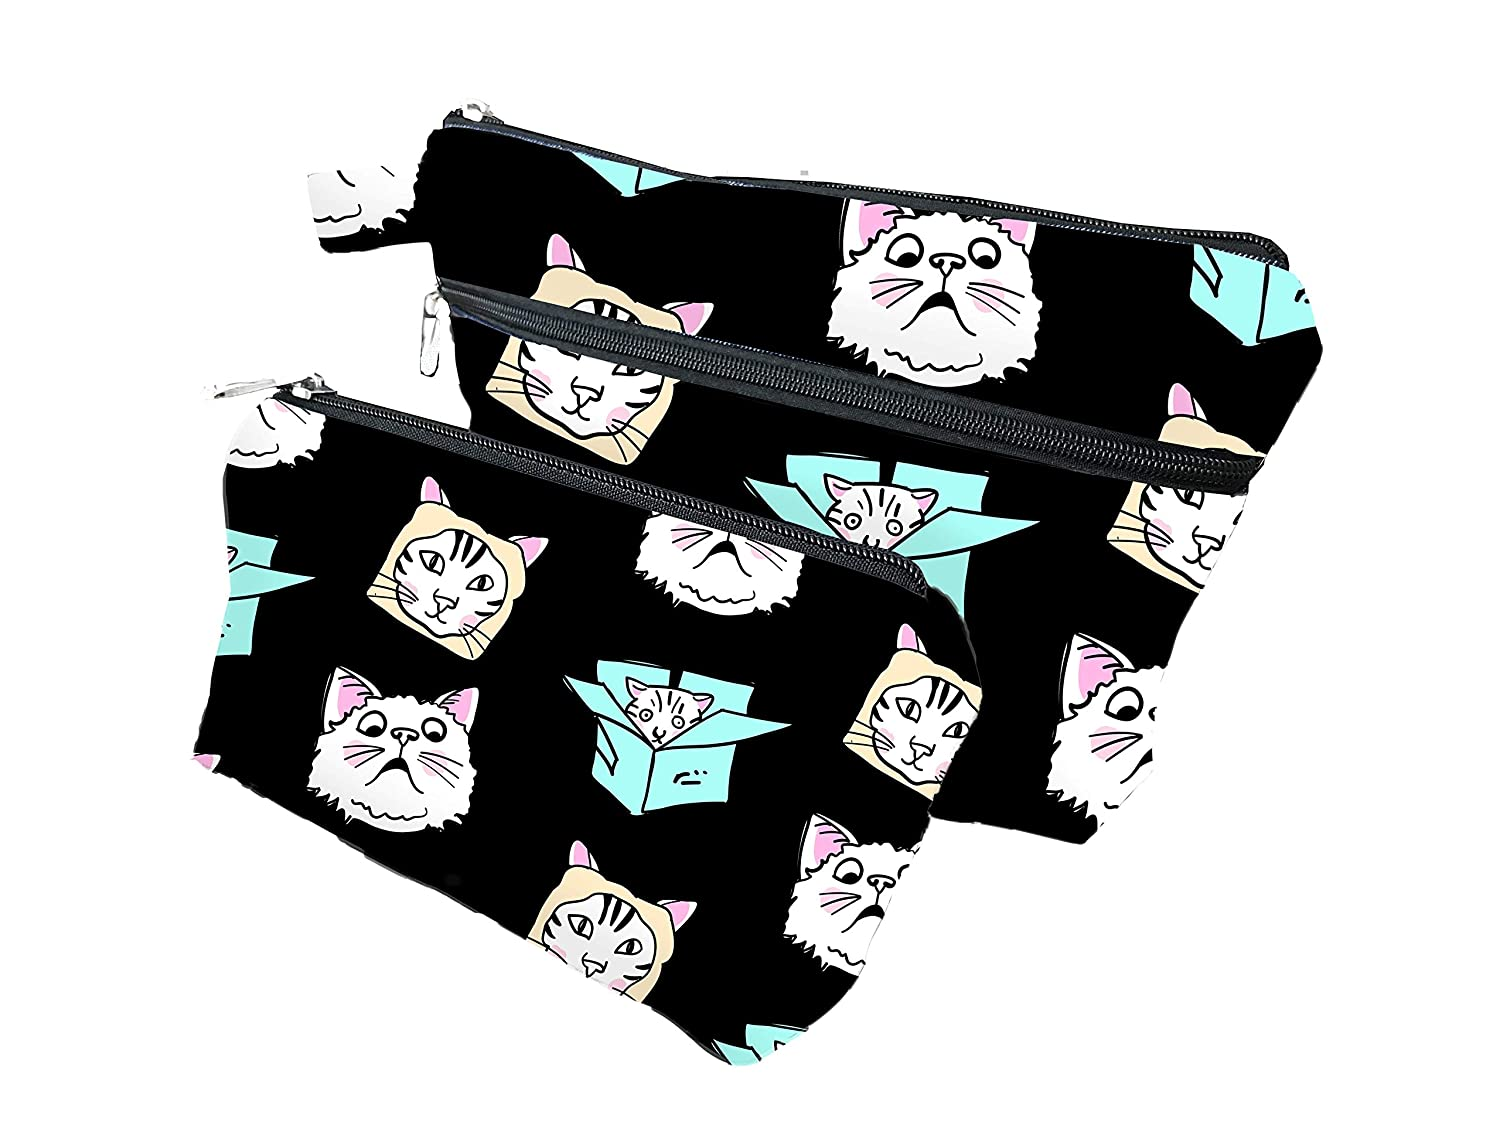 Cats Zippered Pouches for Women and Men - Enhanced Bottom For Maximum Storage - Pencil Cases for Adults - Makeup Bags - Multipurpose Tool Bags With Strong Zippers And Compartments (Pack of 2)